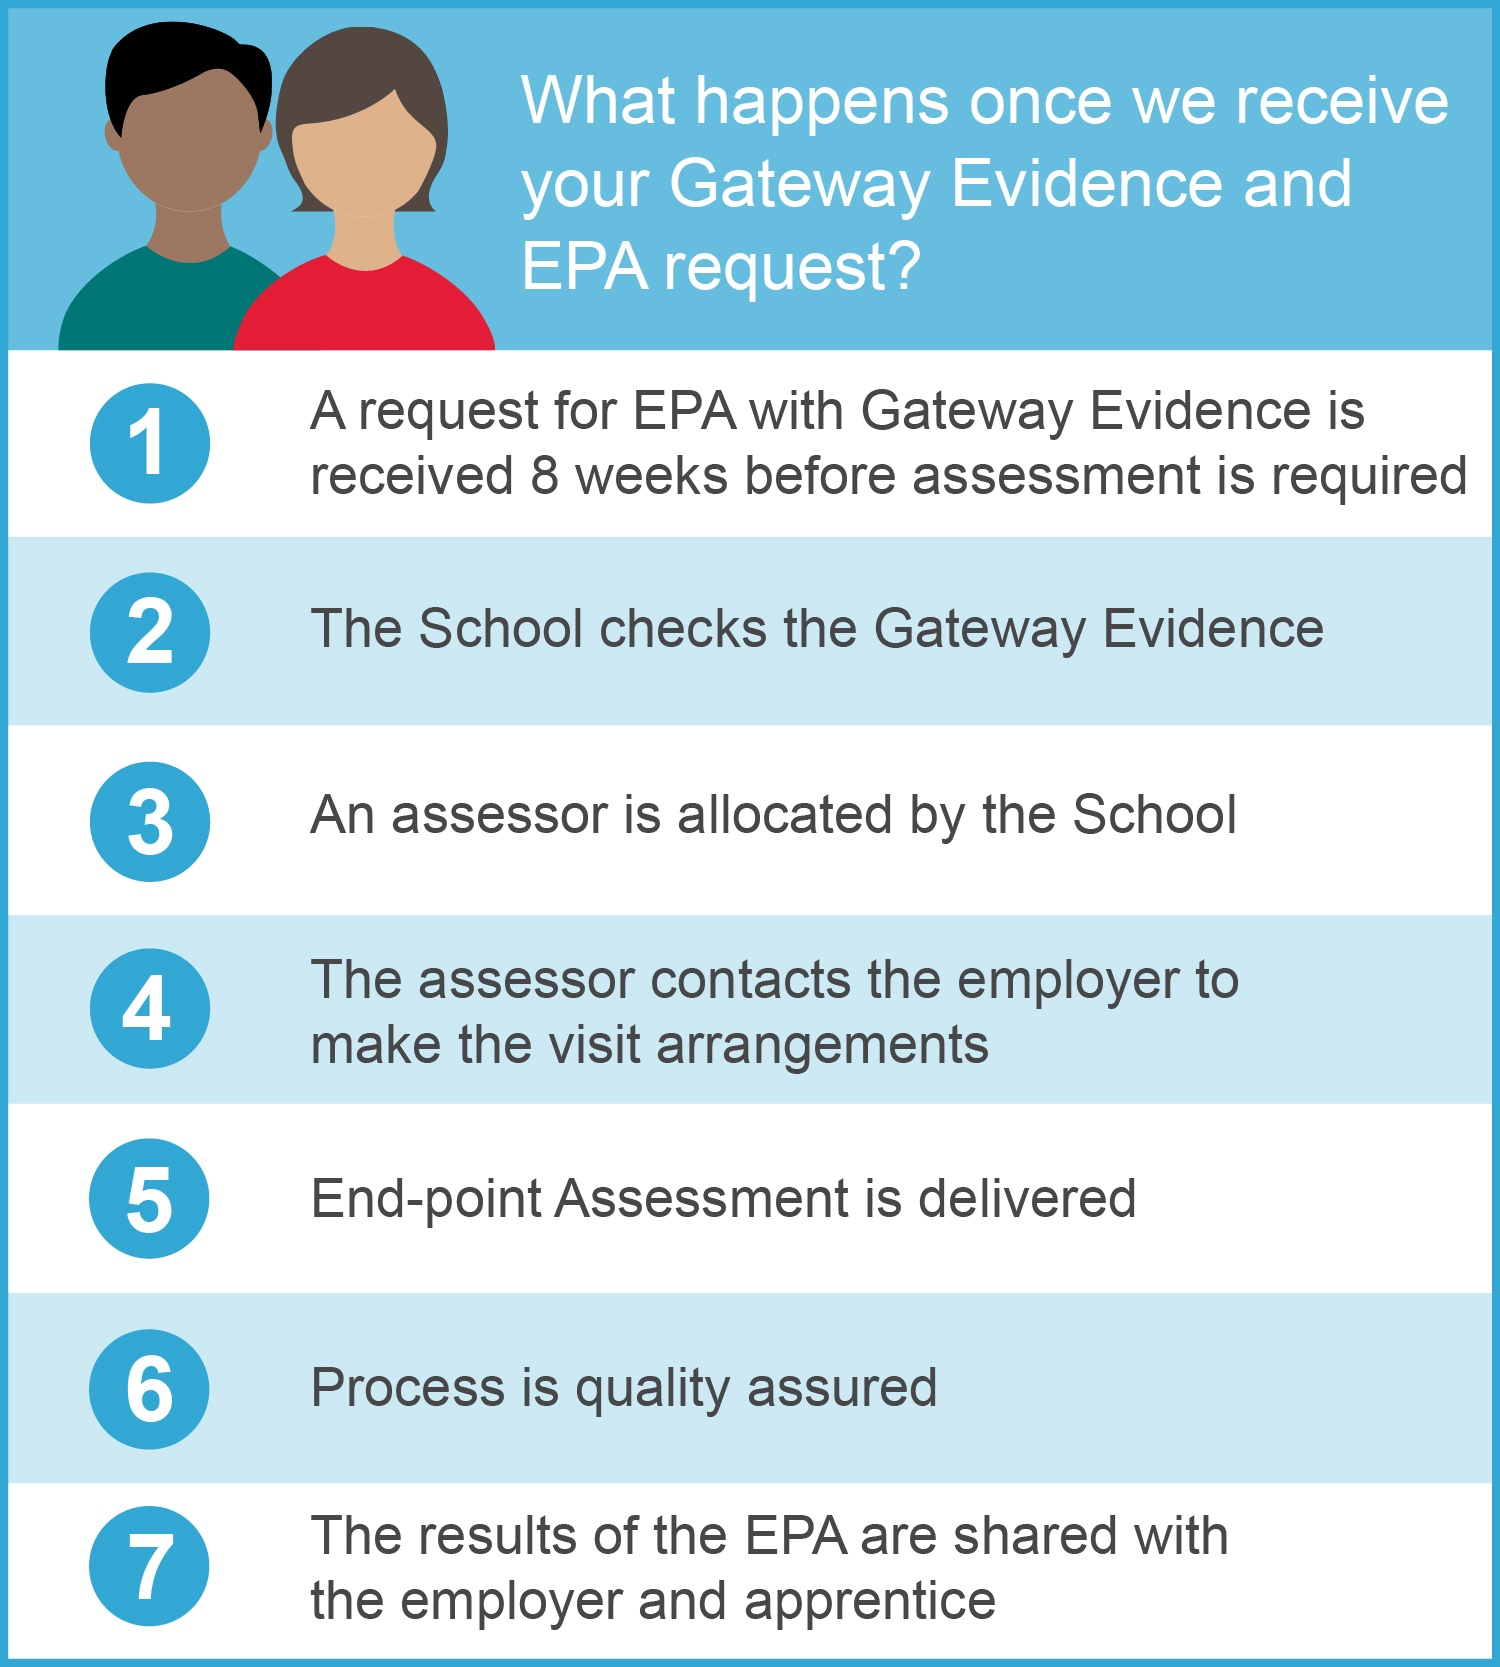 Infographic explaining what the School will do once they receive Gateway Evidence and EPA request.